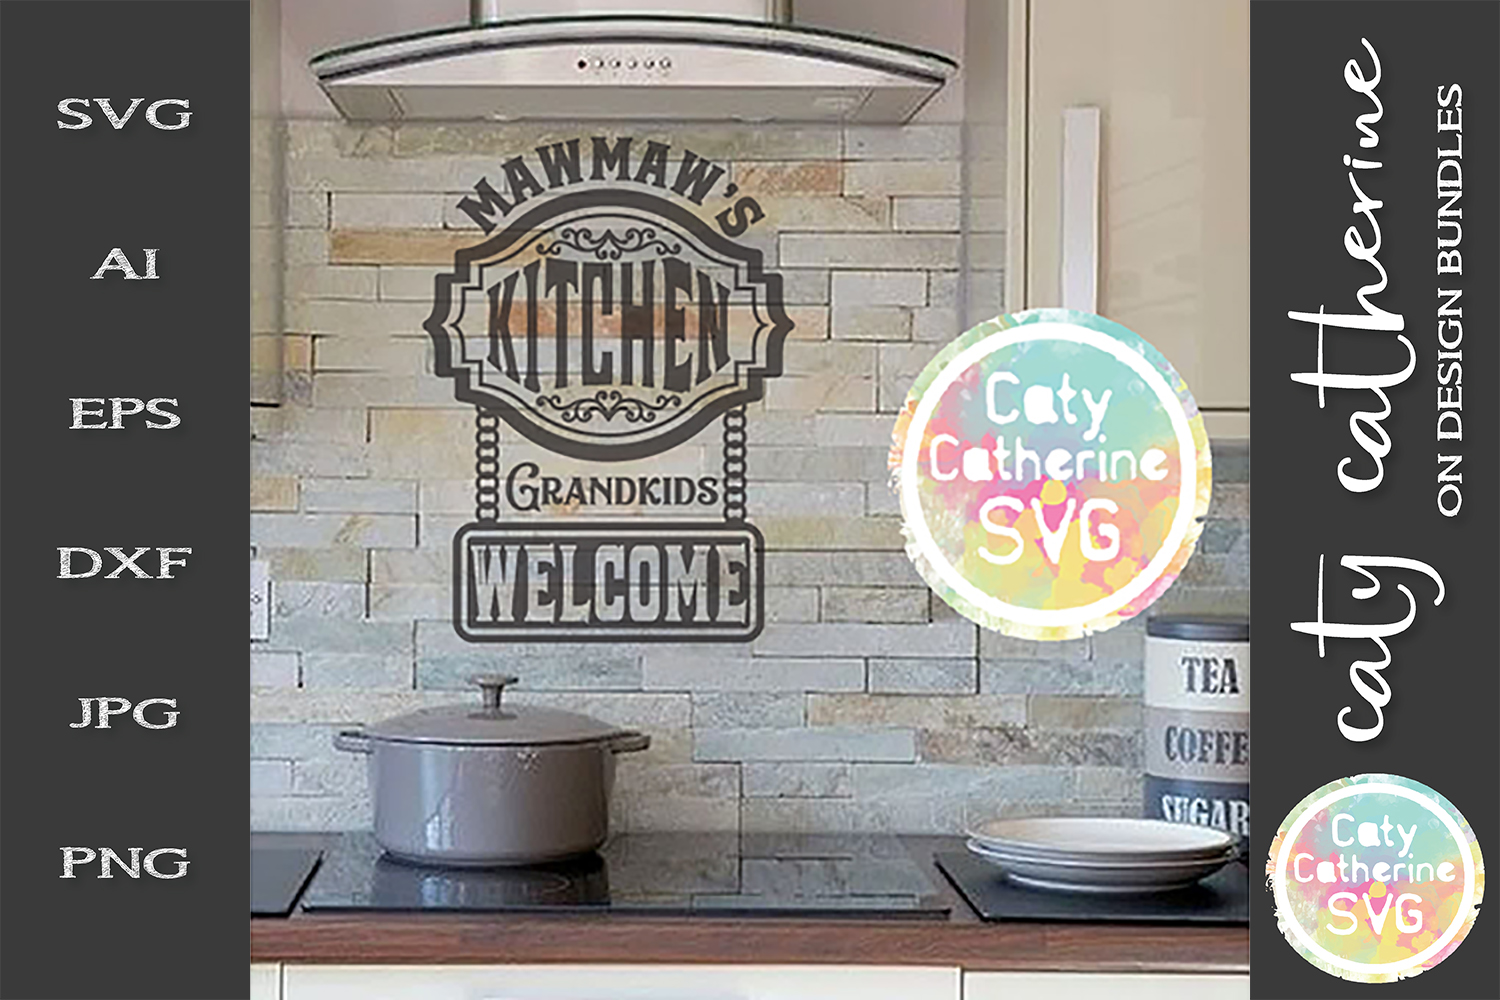 MawMaw's Kitchen Grandkids Welcome SVG Cut File example image 1